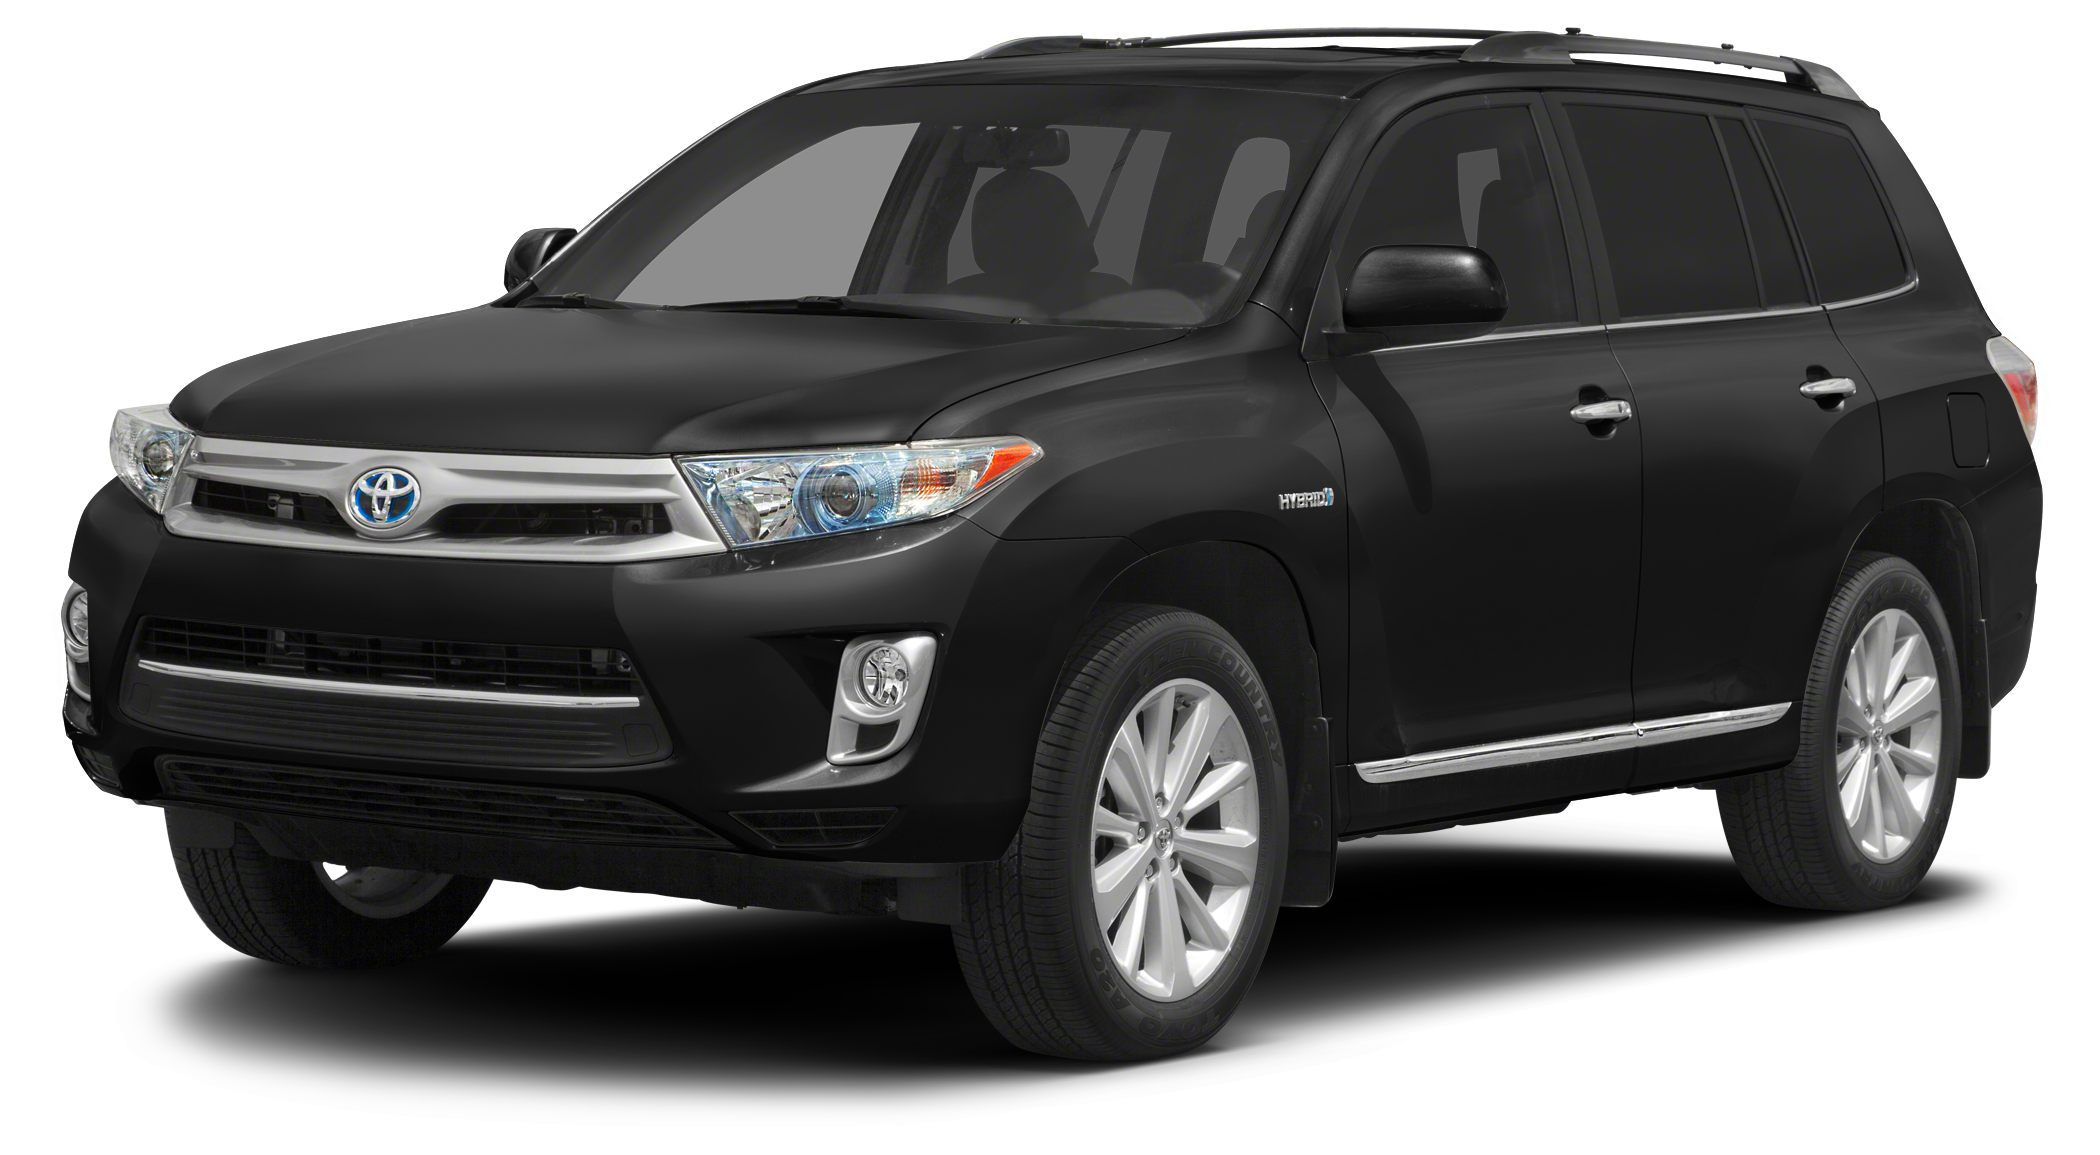 2012 Toyota Highlander Hybrid Limited CARFAX 1-Owner ONLY 43436 Miles FUEL EFFICIENT 28 MPG Hwy